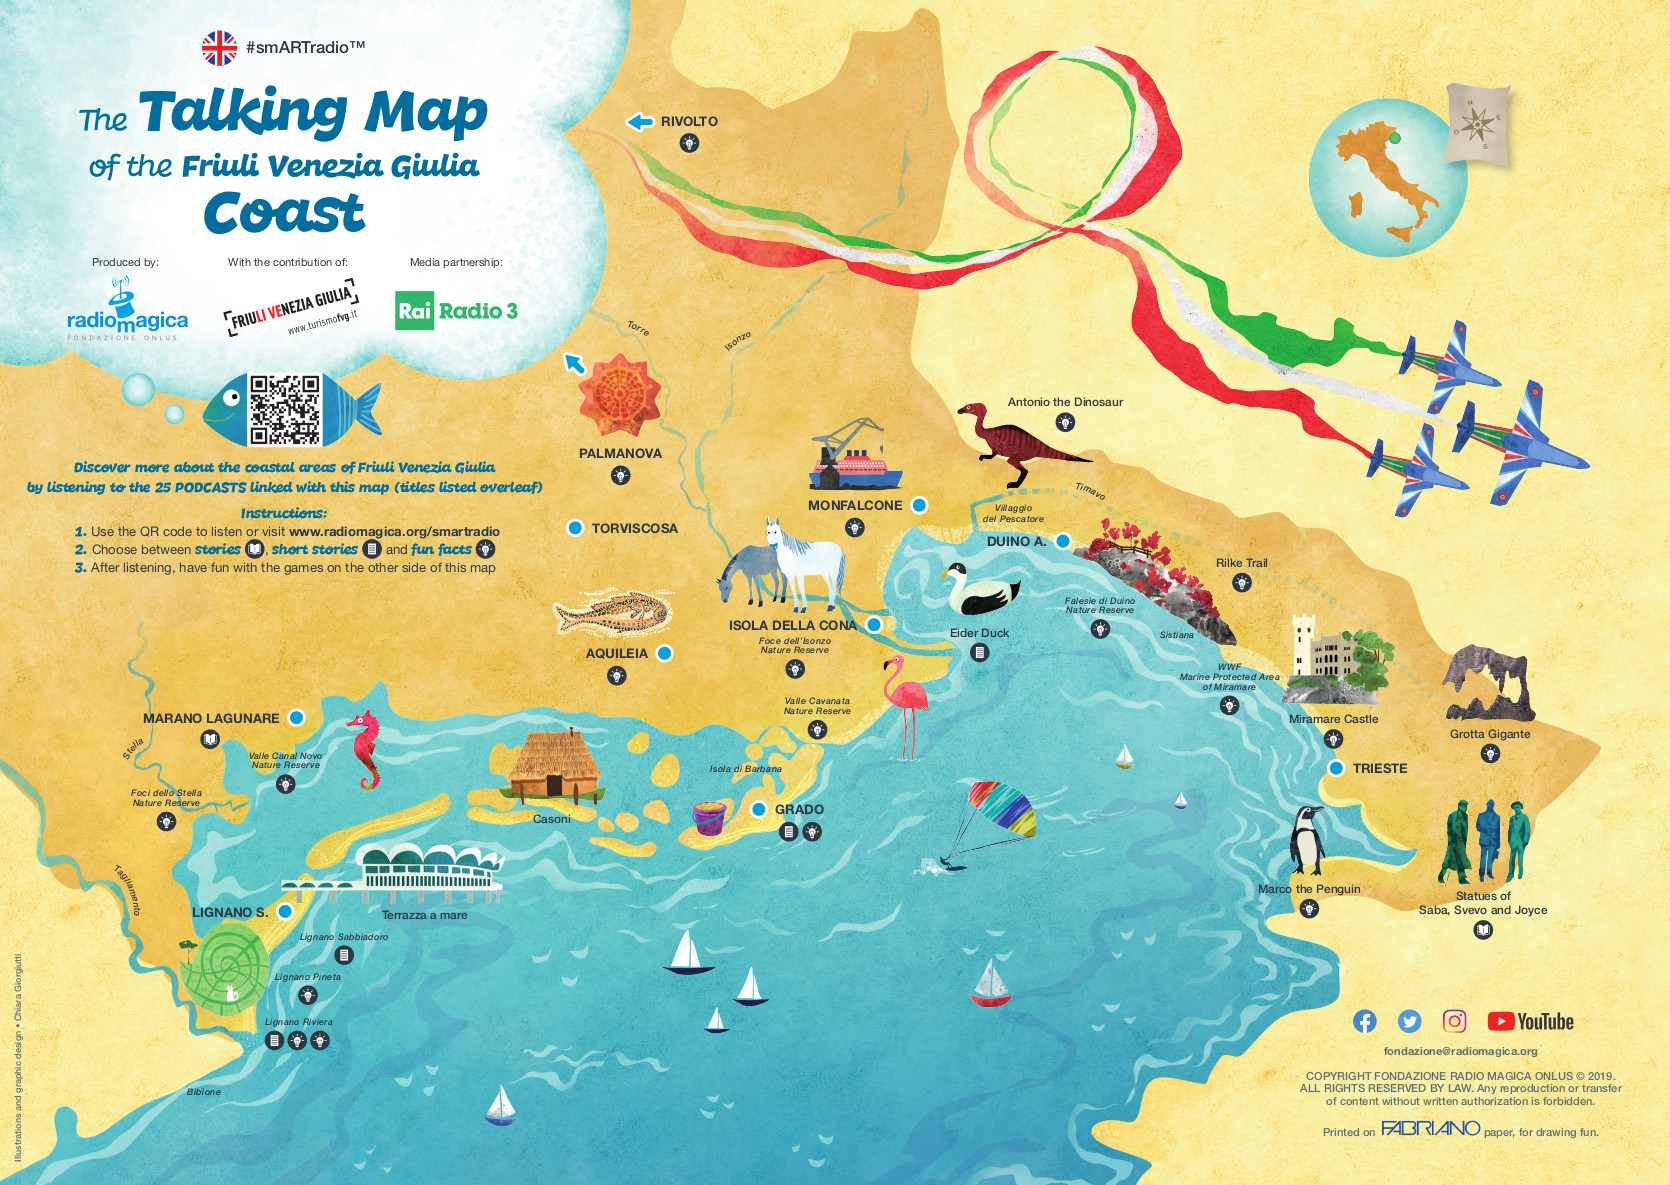 The Talking Map of the Friuli Venezia Giulia Coast - front